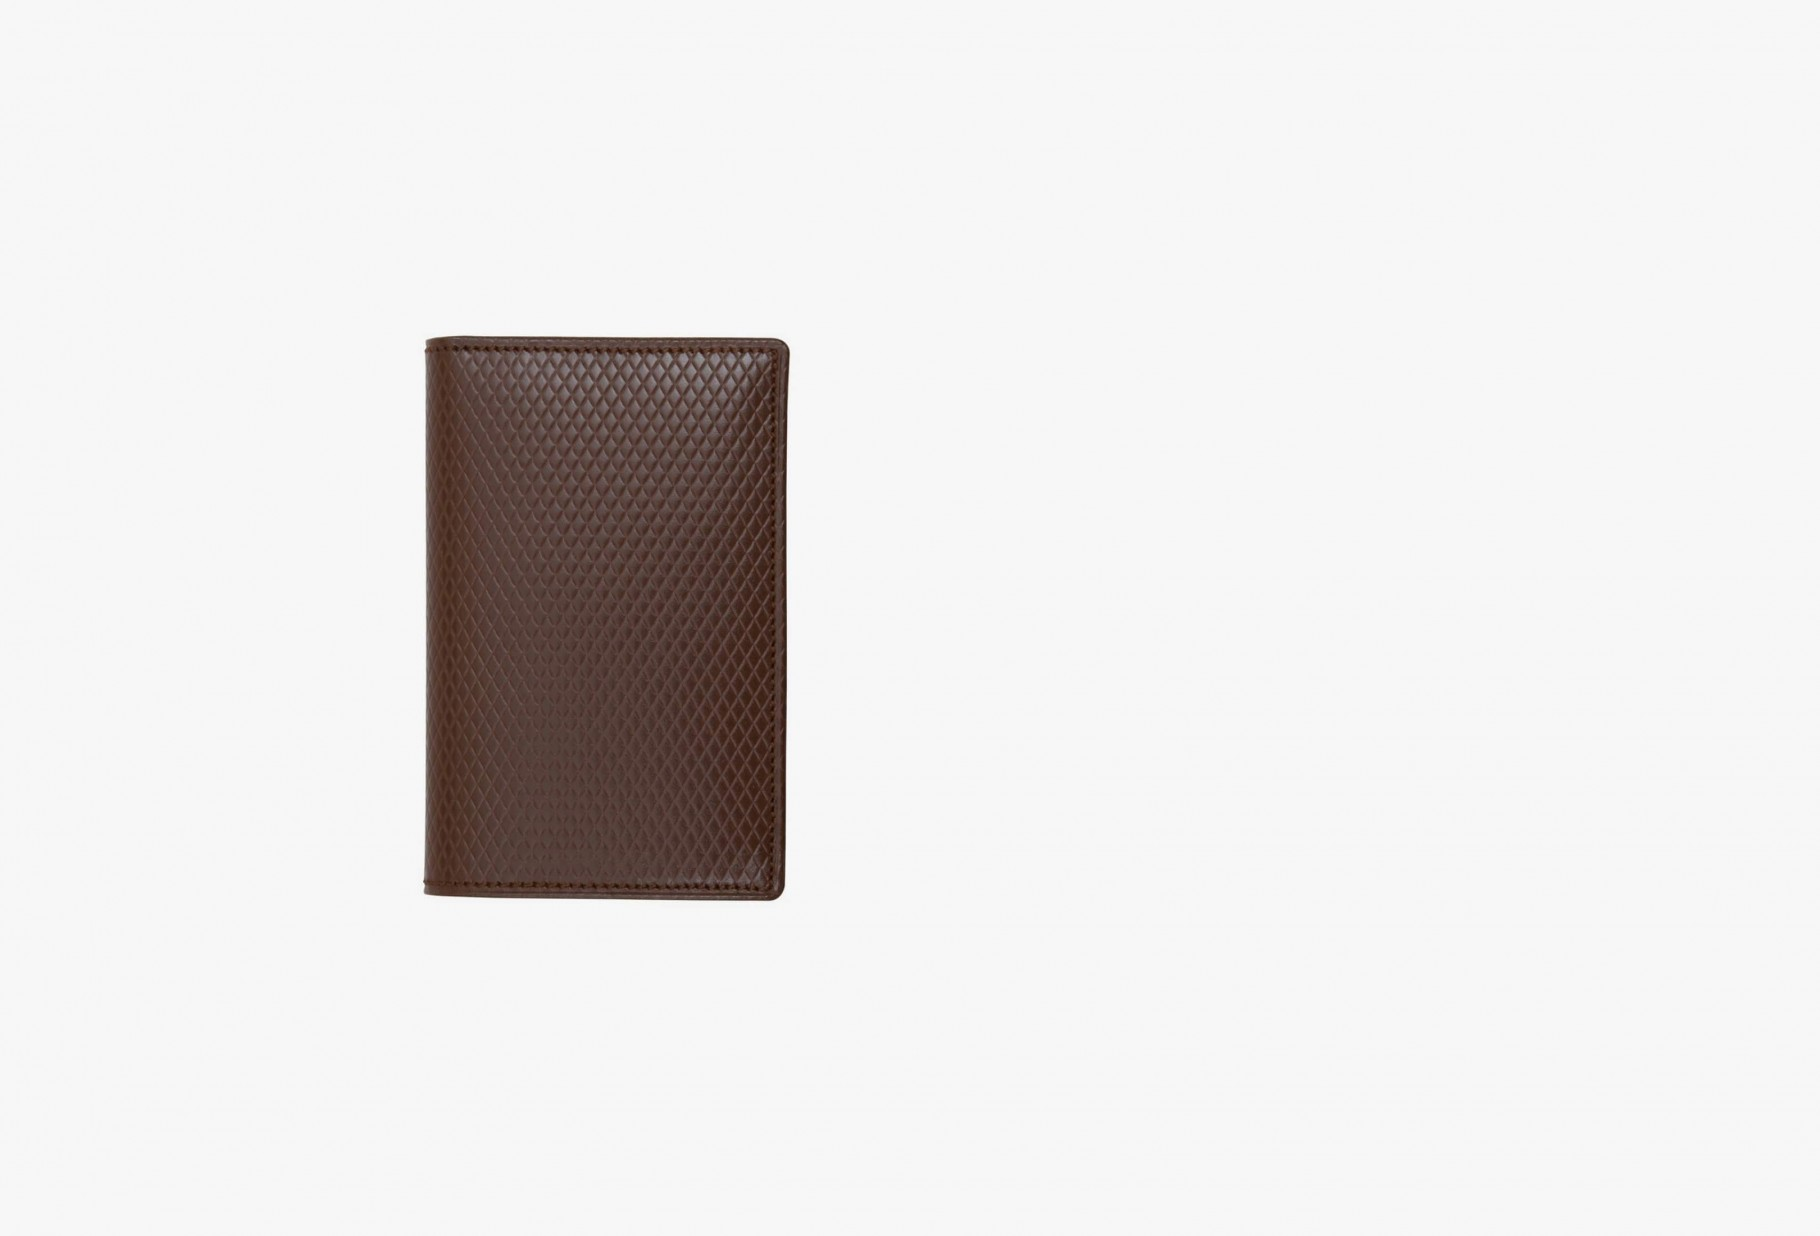 CDG WALLETS / Cdg luxury group sa6400lg Brown